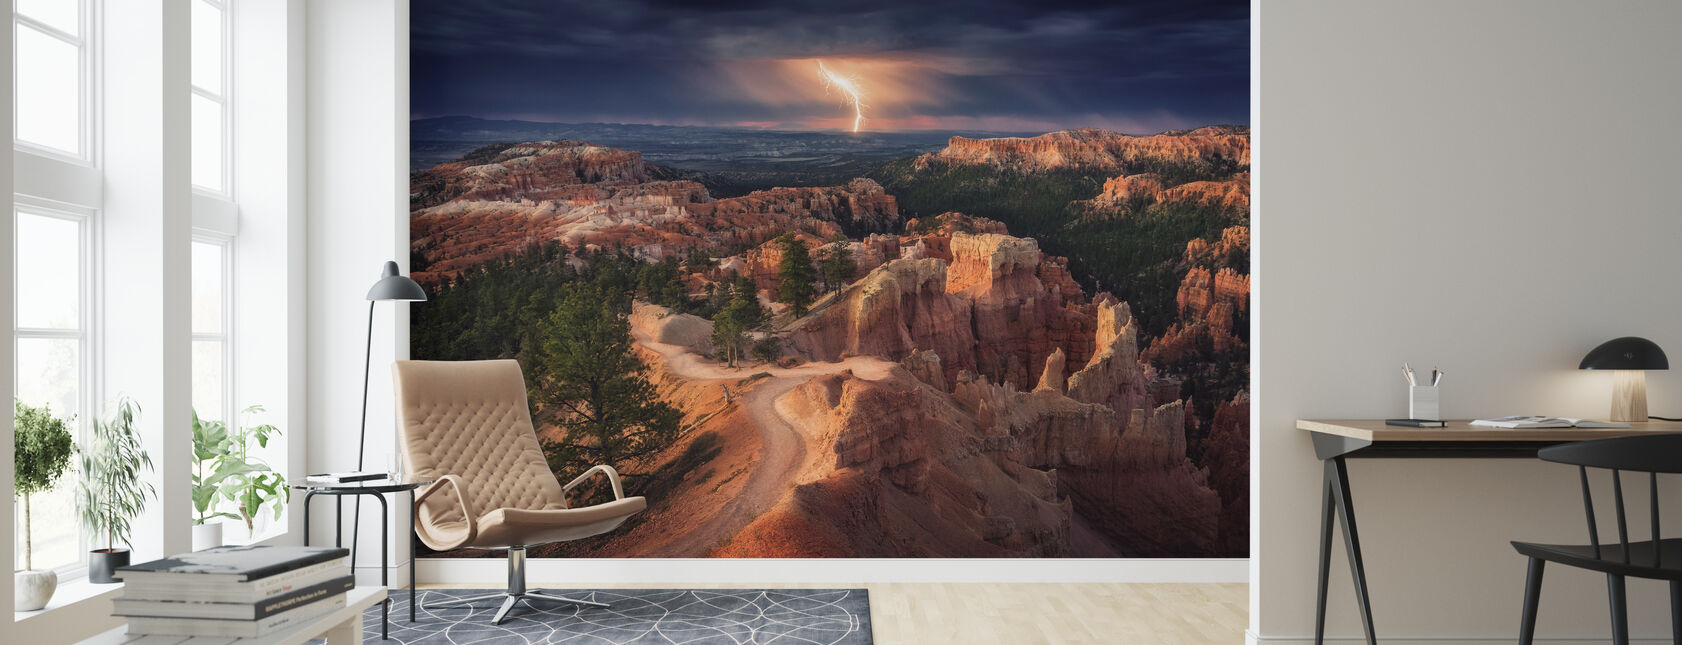 Bliksem over Bryce Canyon - Behang - Woonkamer